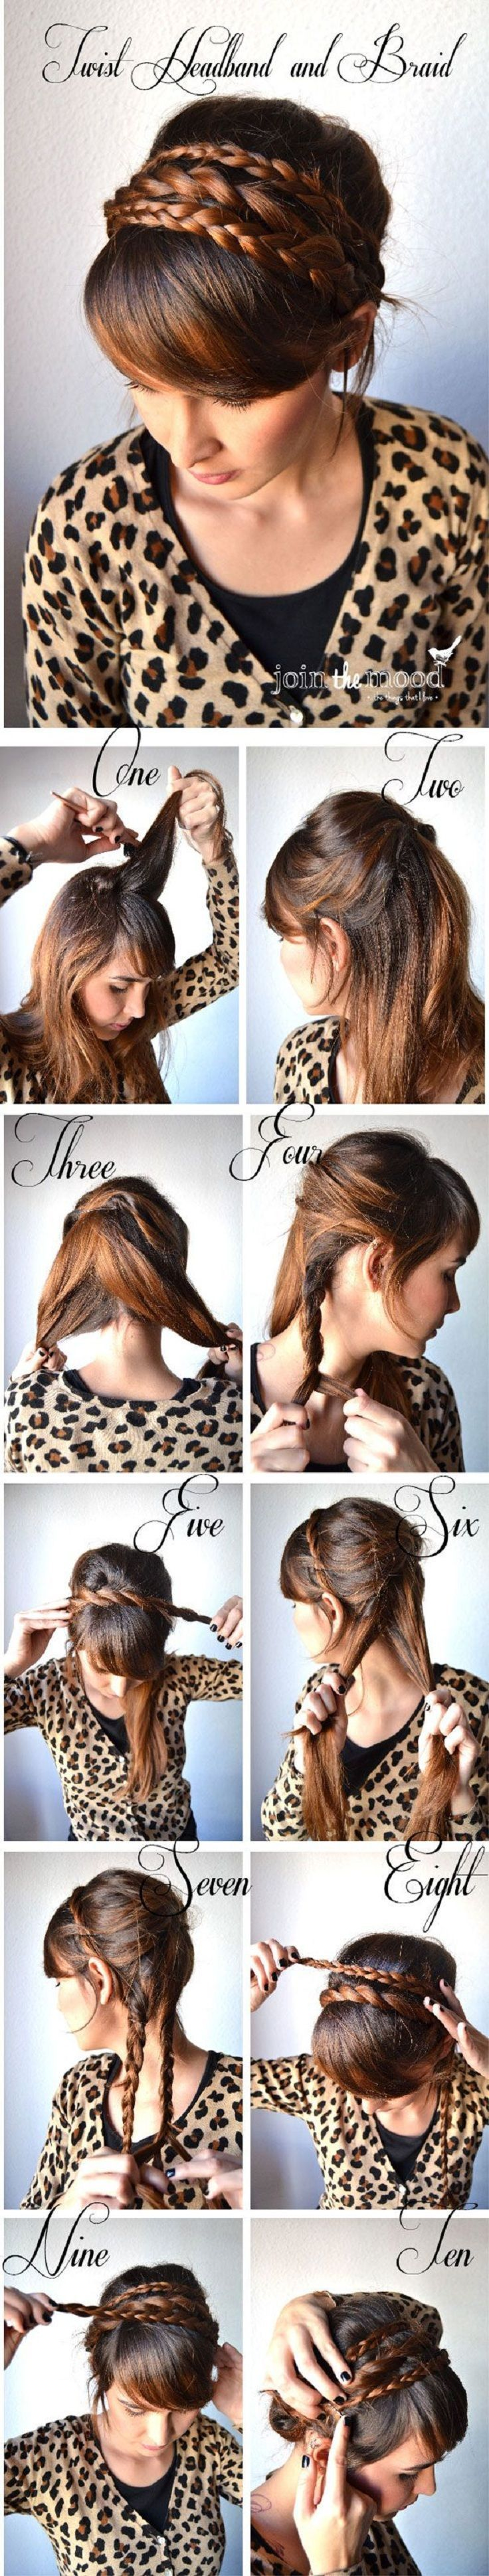 Twist & braid hairstyle. Since my hair is very thin, wonder if I could fake it with braided hair pieces... Hmmm...